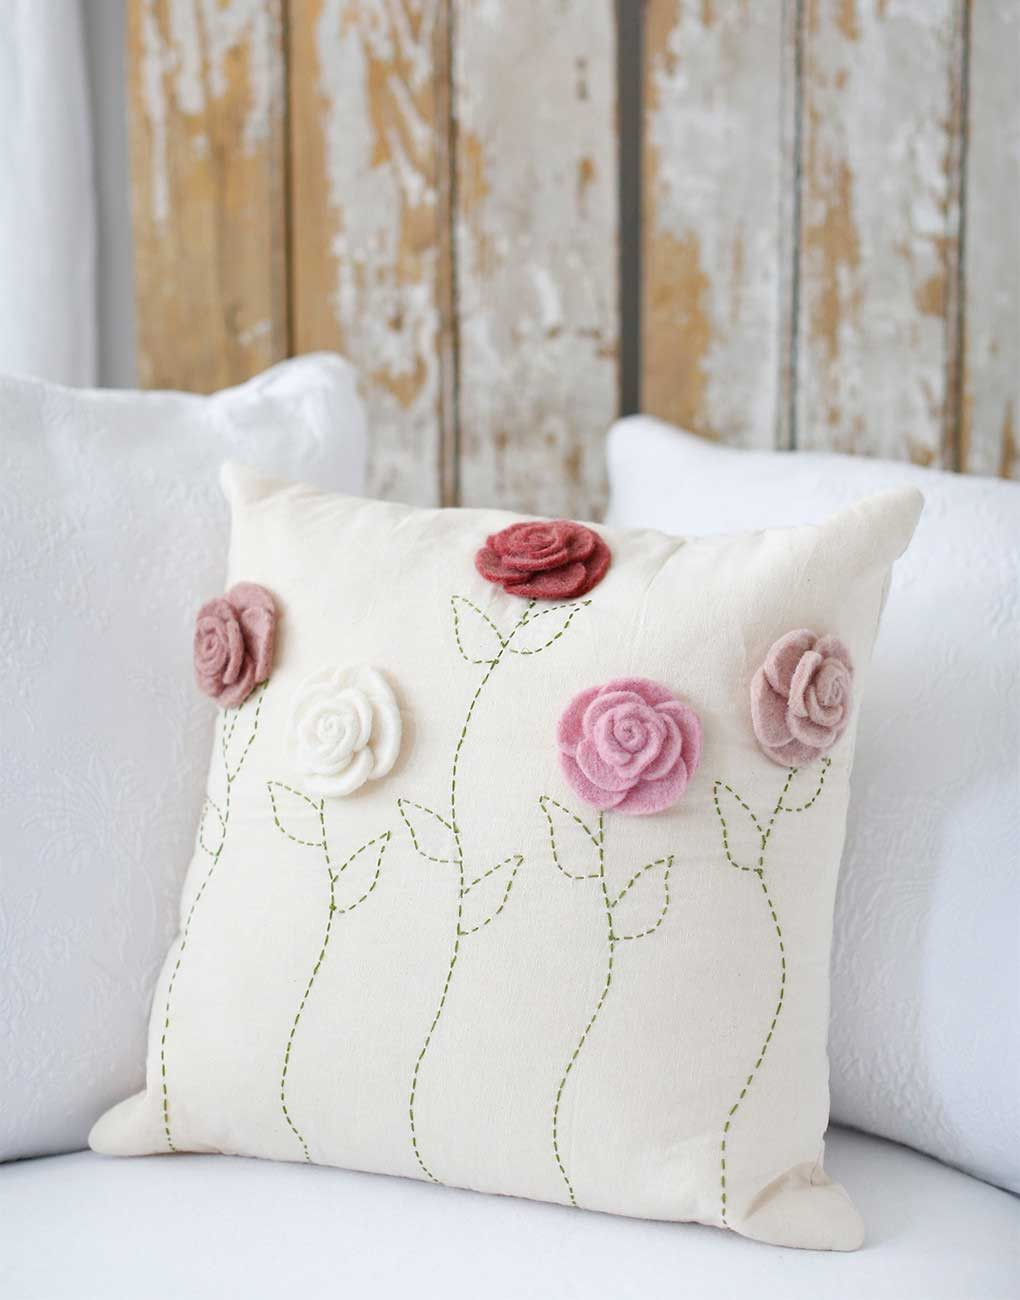 """- Description - Artisan - Artisan Photo - Hang Tag Felt roses blossom atop a linen pillowcase that's finished with hand-embroidered stems. * Hand wash * Approximately 16"""" x 16"""" * Design on Front * Pil                                                                                                                                                                                 More"""